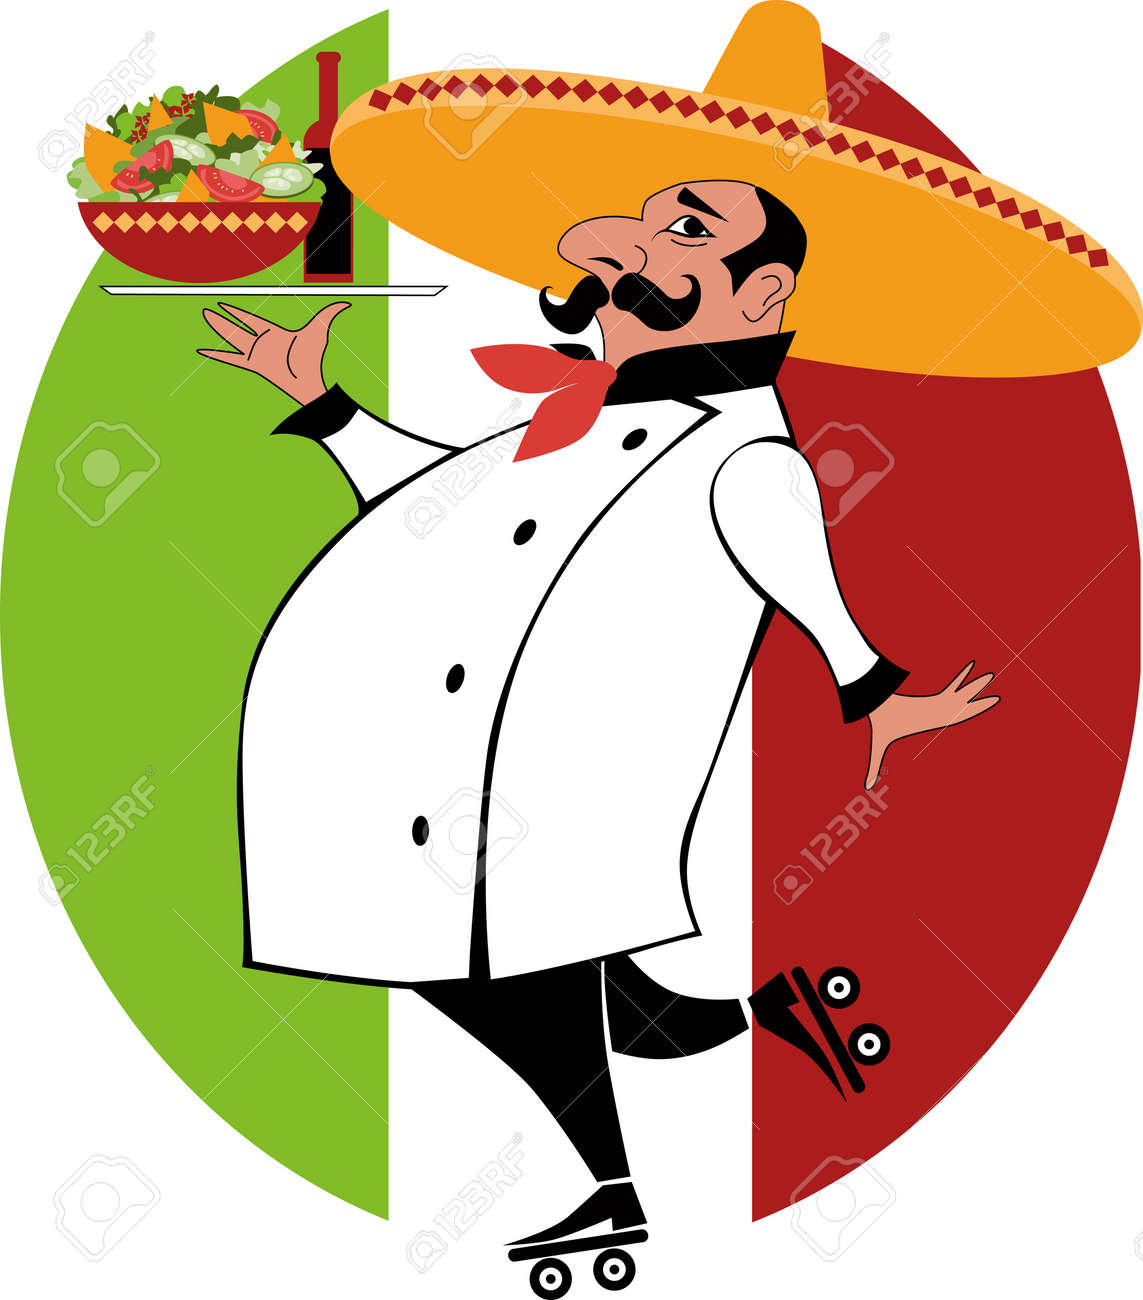 Cartoon Of A Mexican Chef In Uniform And Sombrero On Roller Skates Carrying Tray